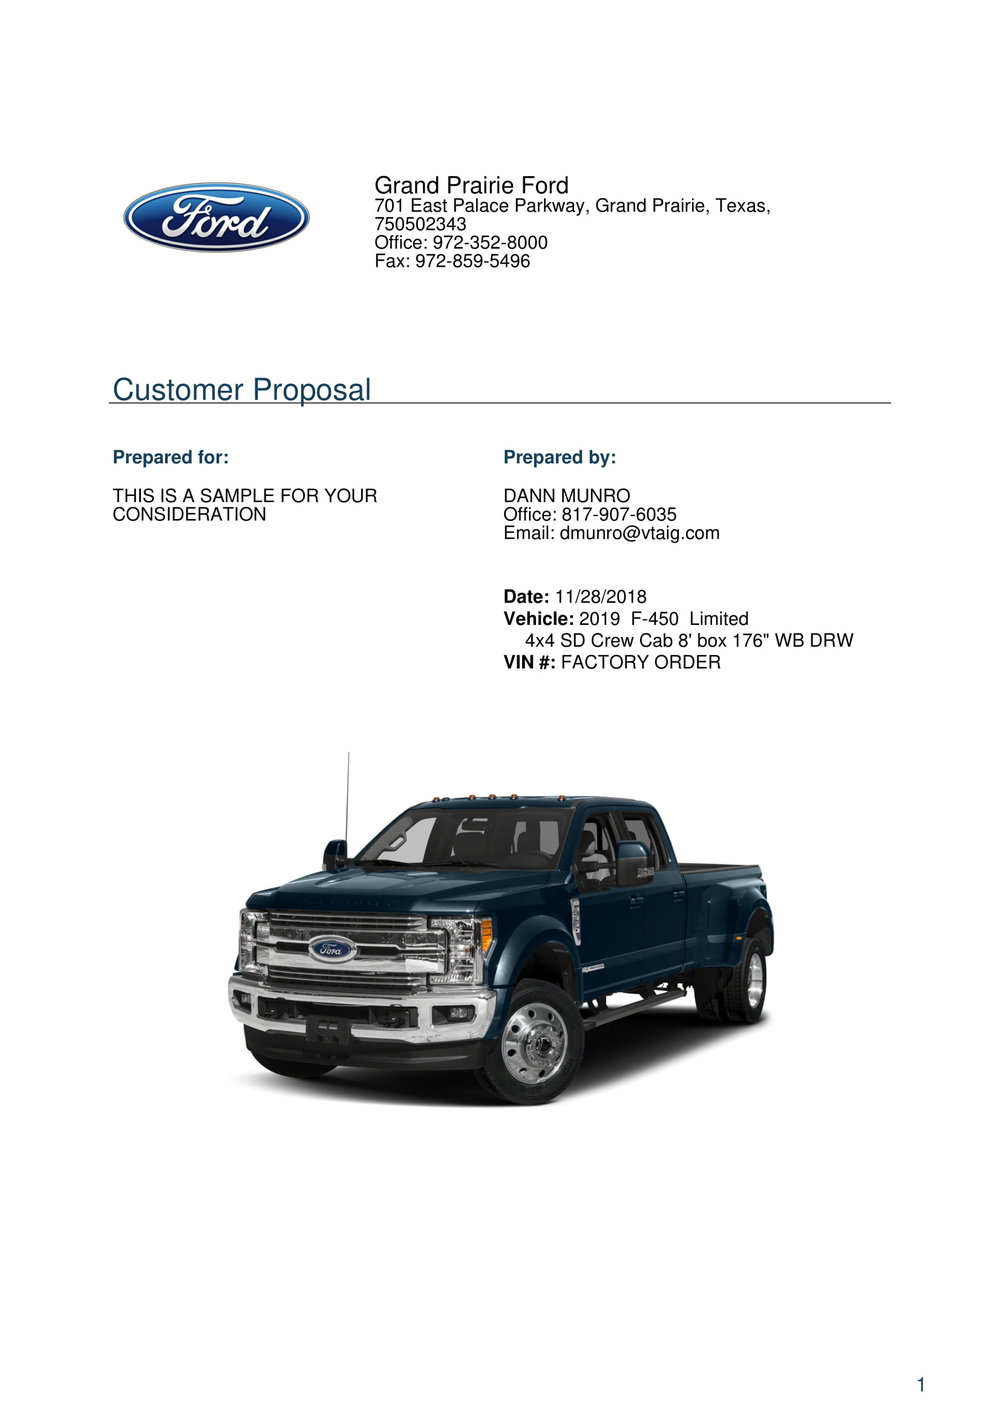 Copy of F450 Limited For Sale